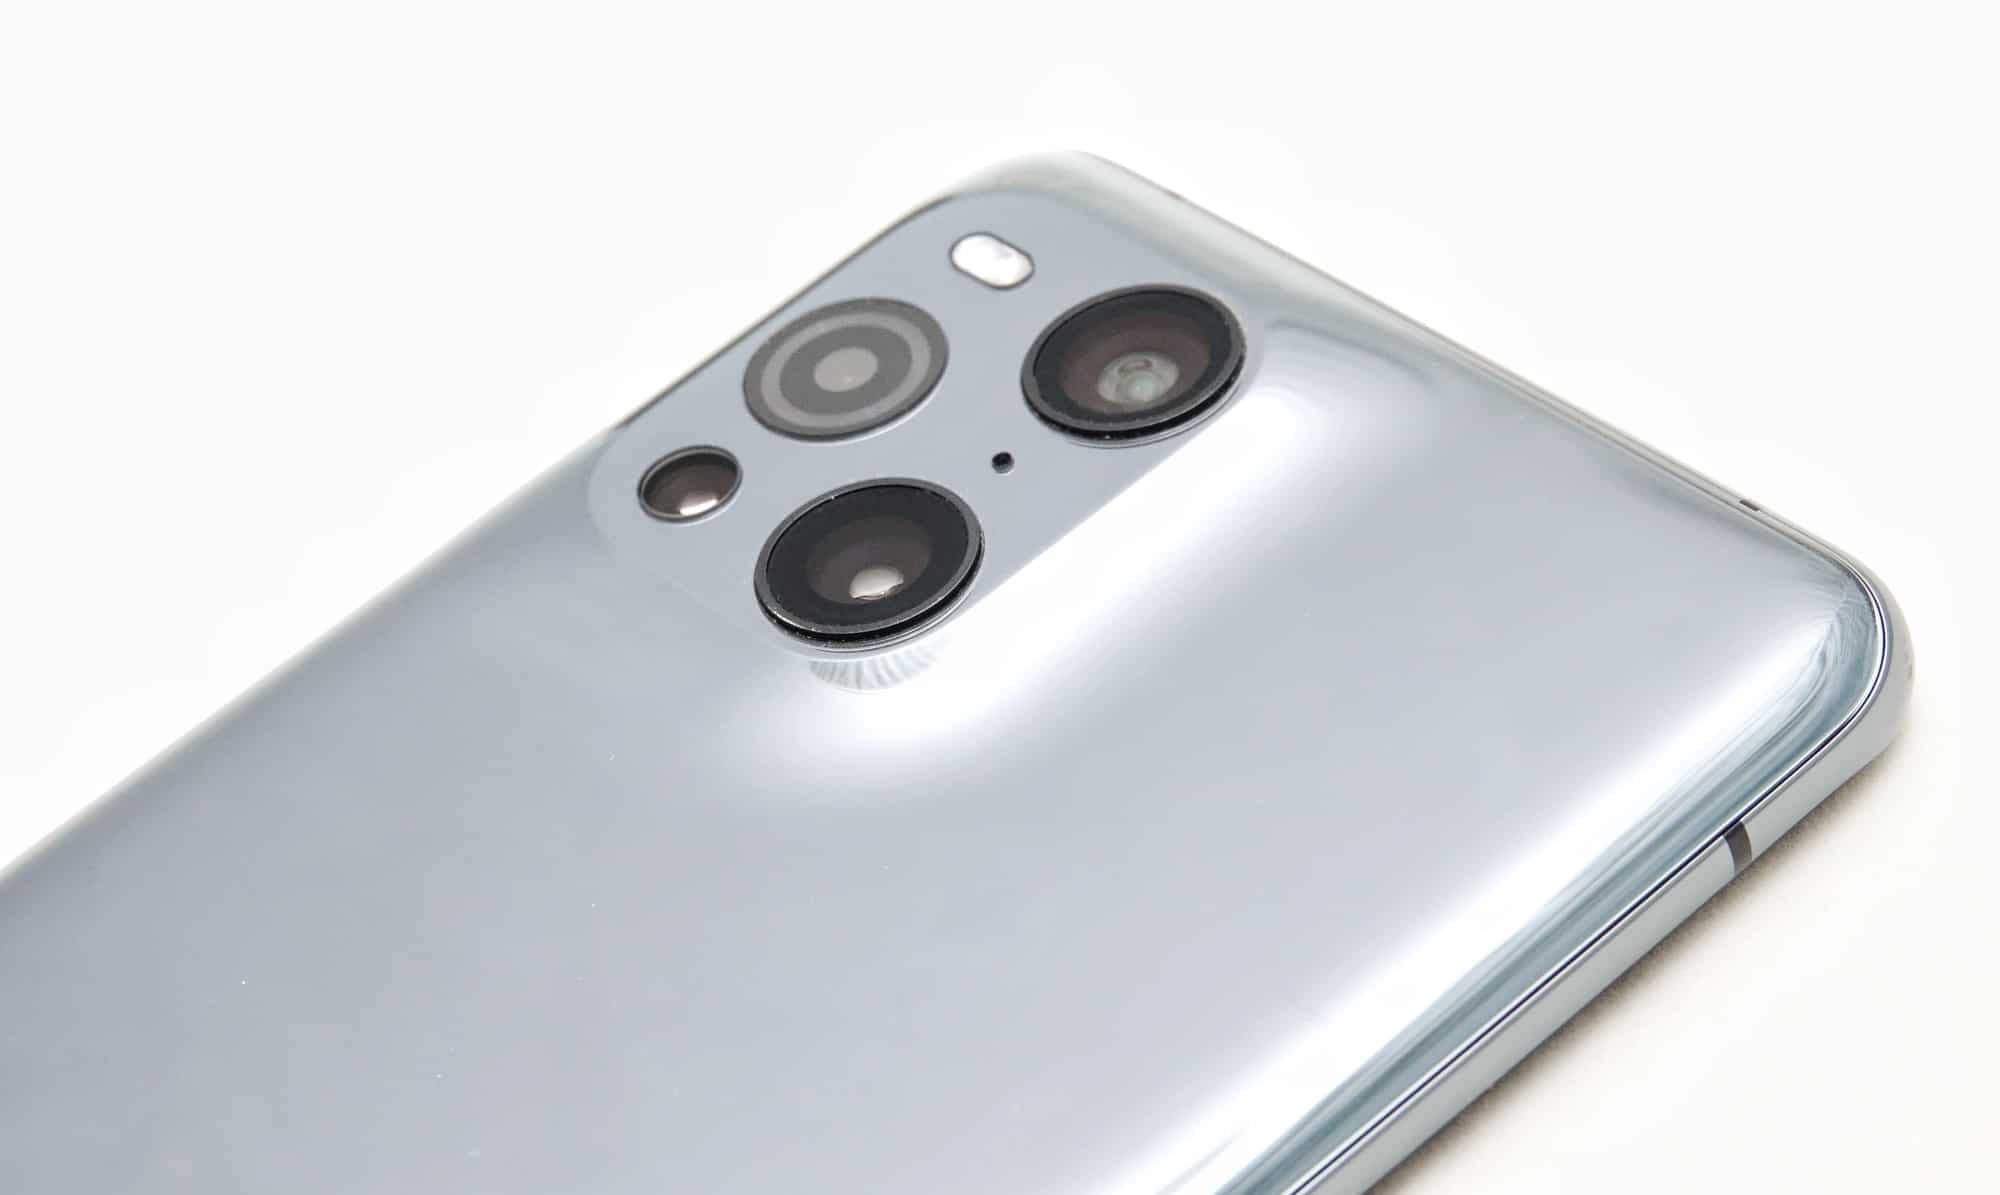 The rear camera system and sleek hump on the Find X3 Pro